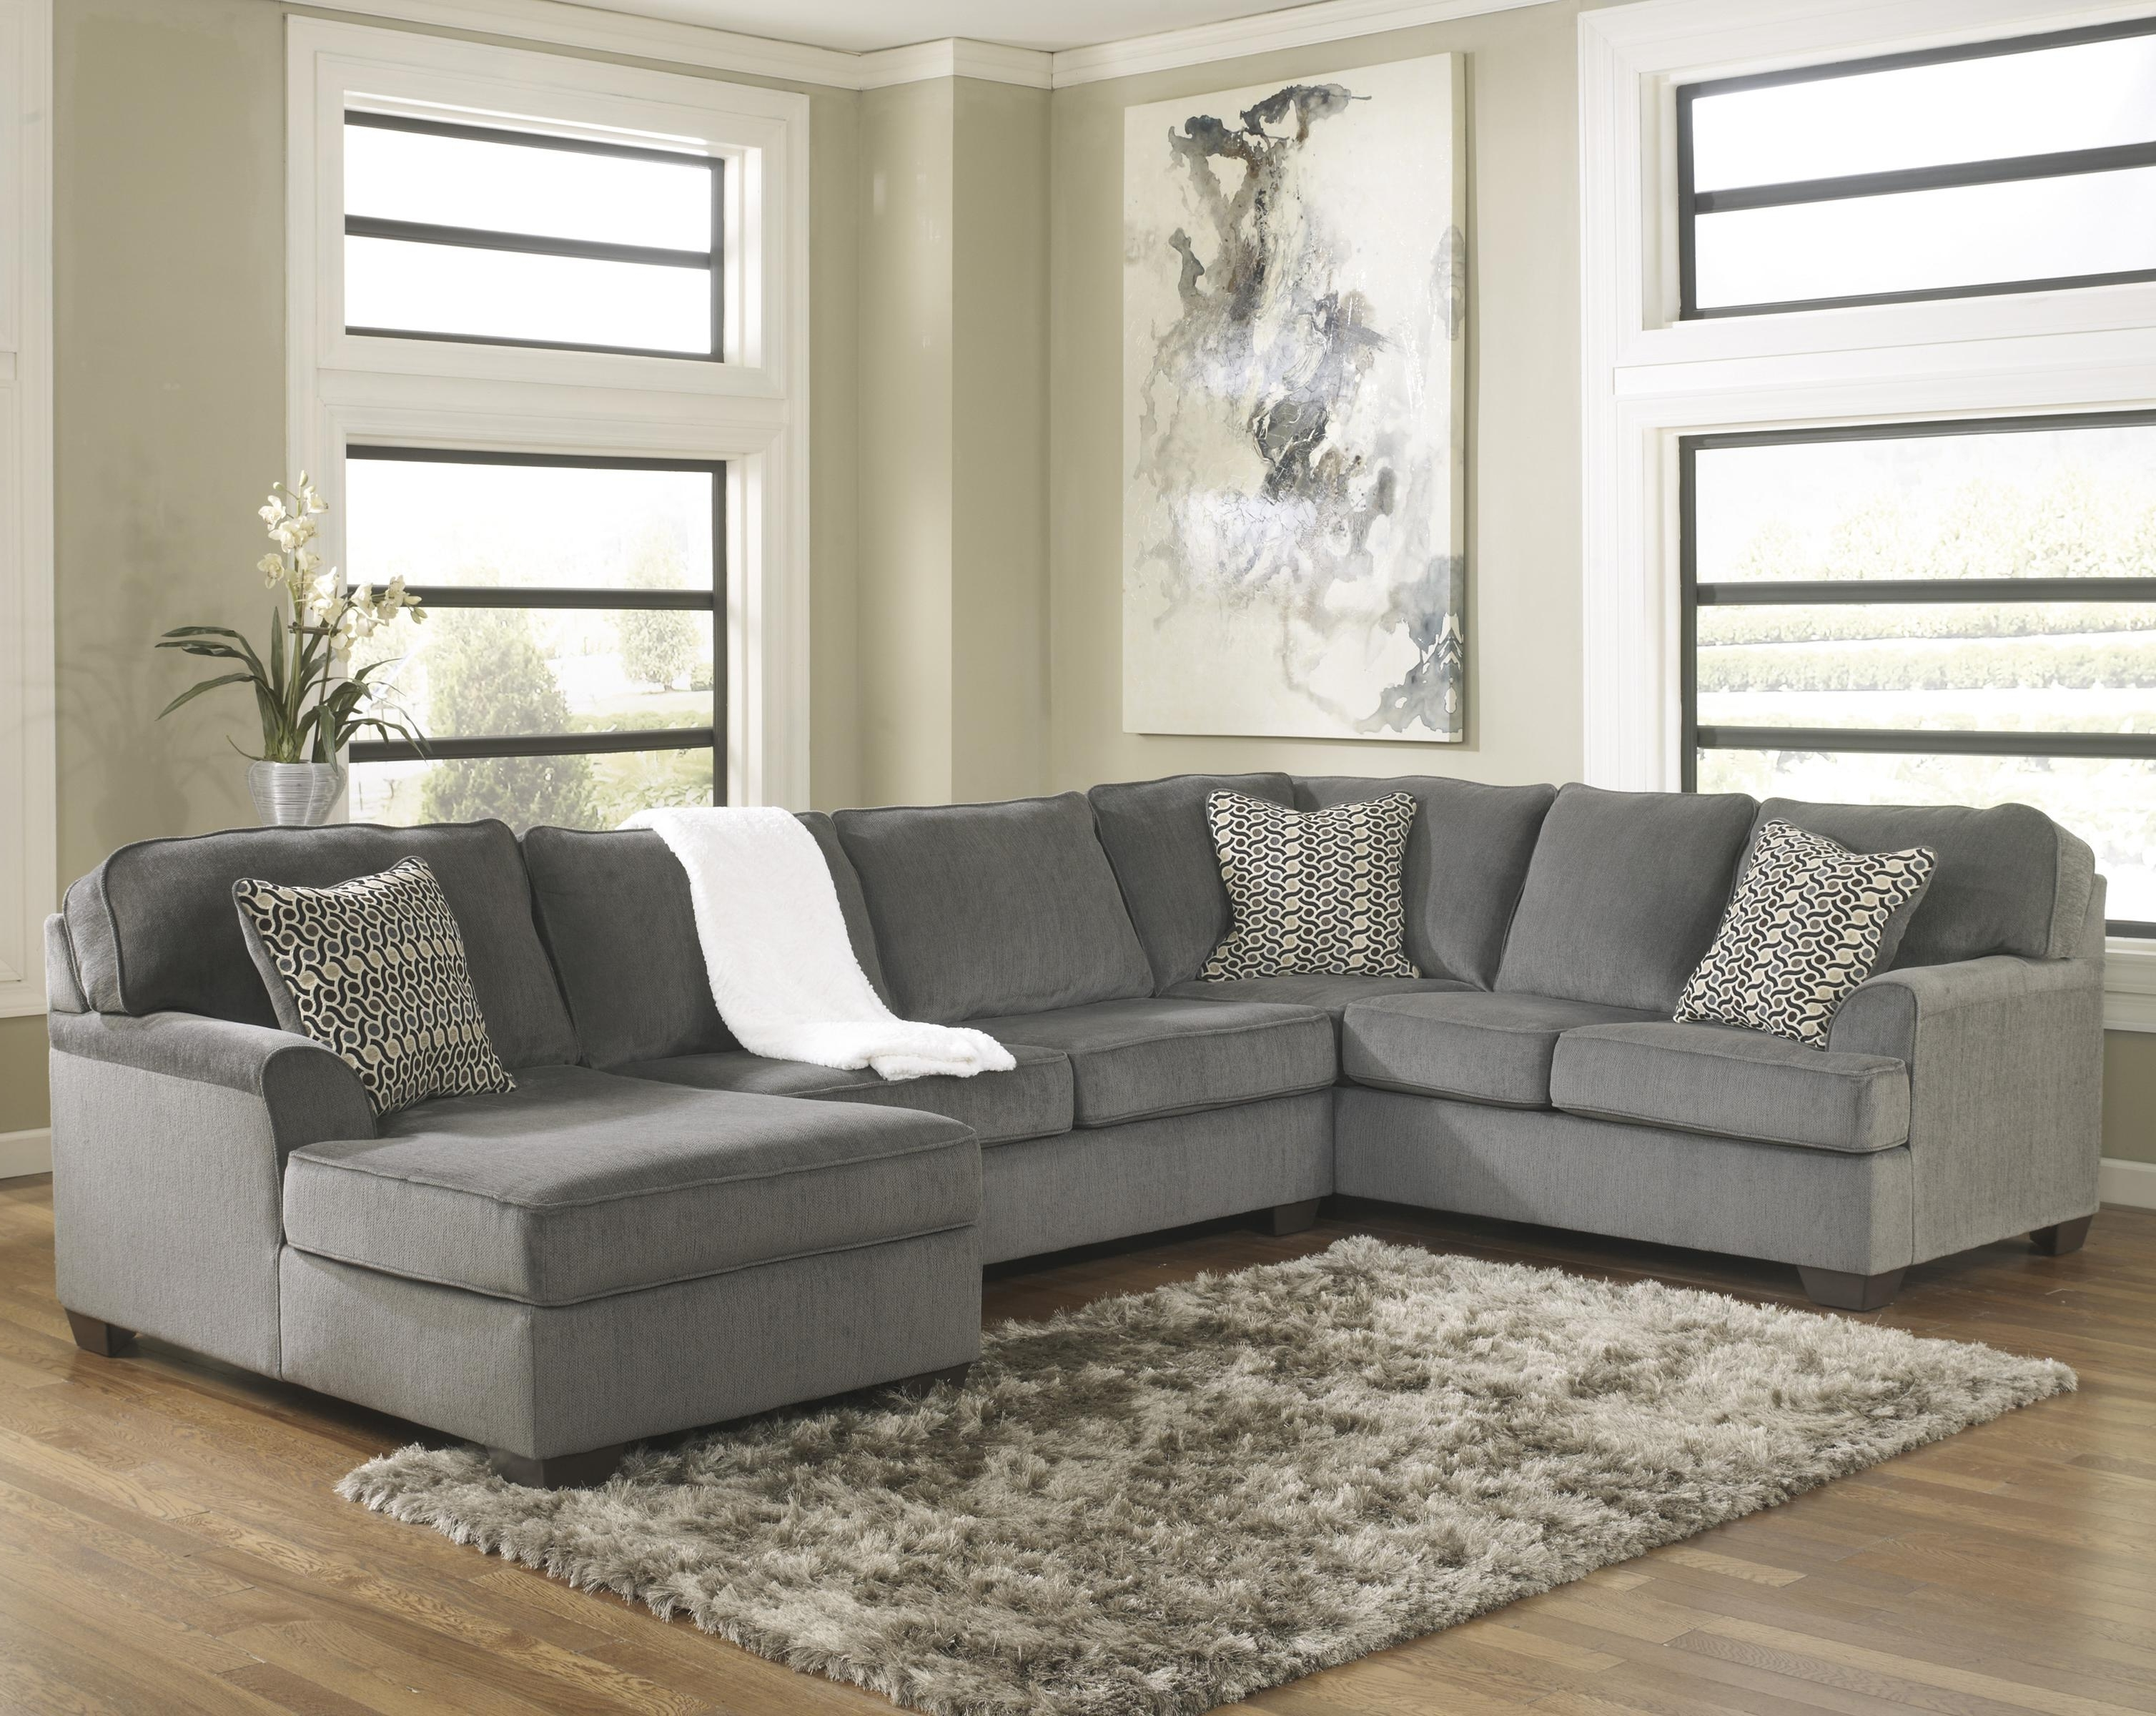 Most Up To Date 10X8 Sectional Sofas Inside Ashley Furniture Sectional Sofas – Mforum (View 15 of 20)